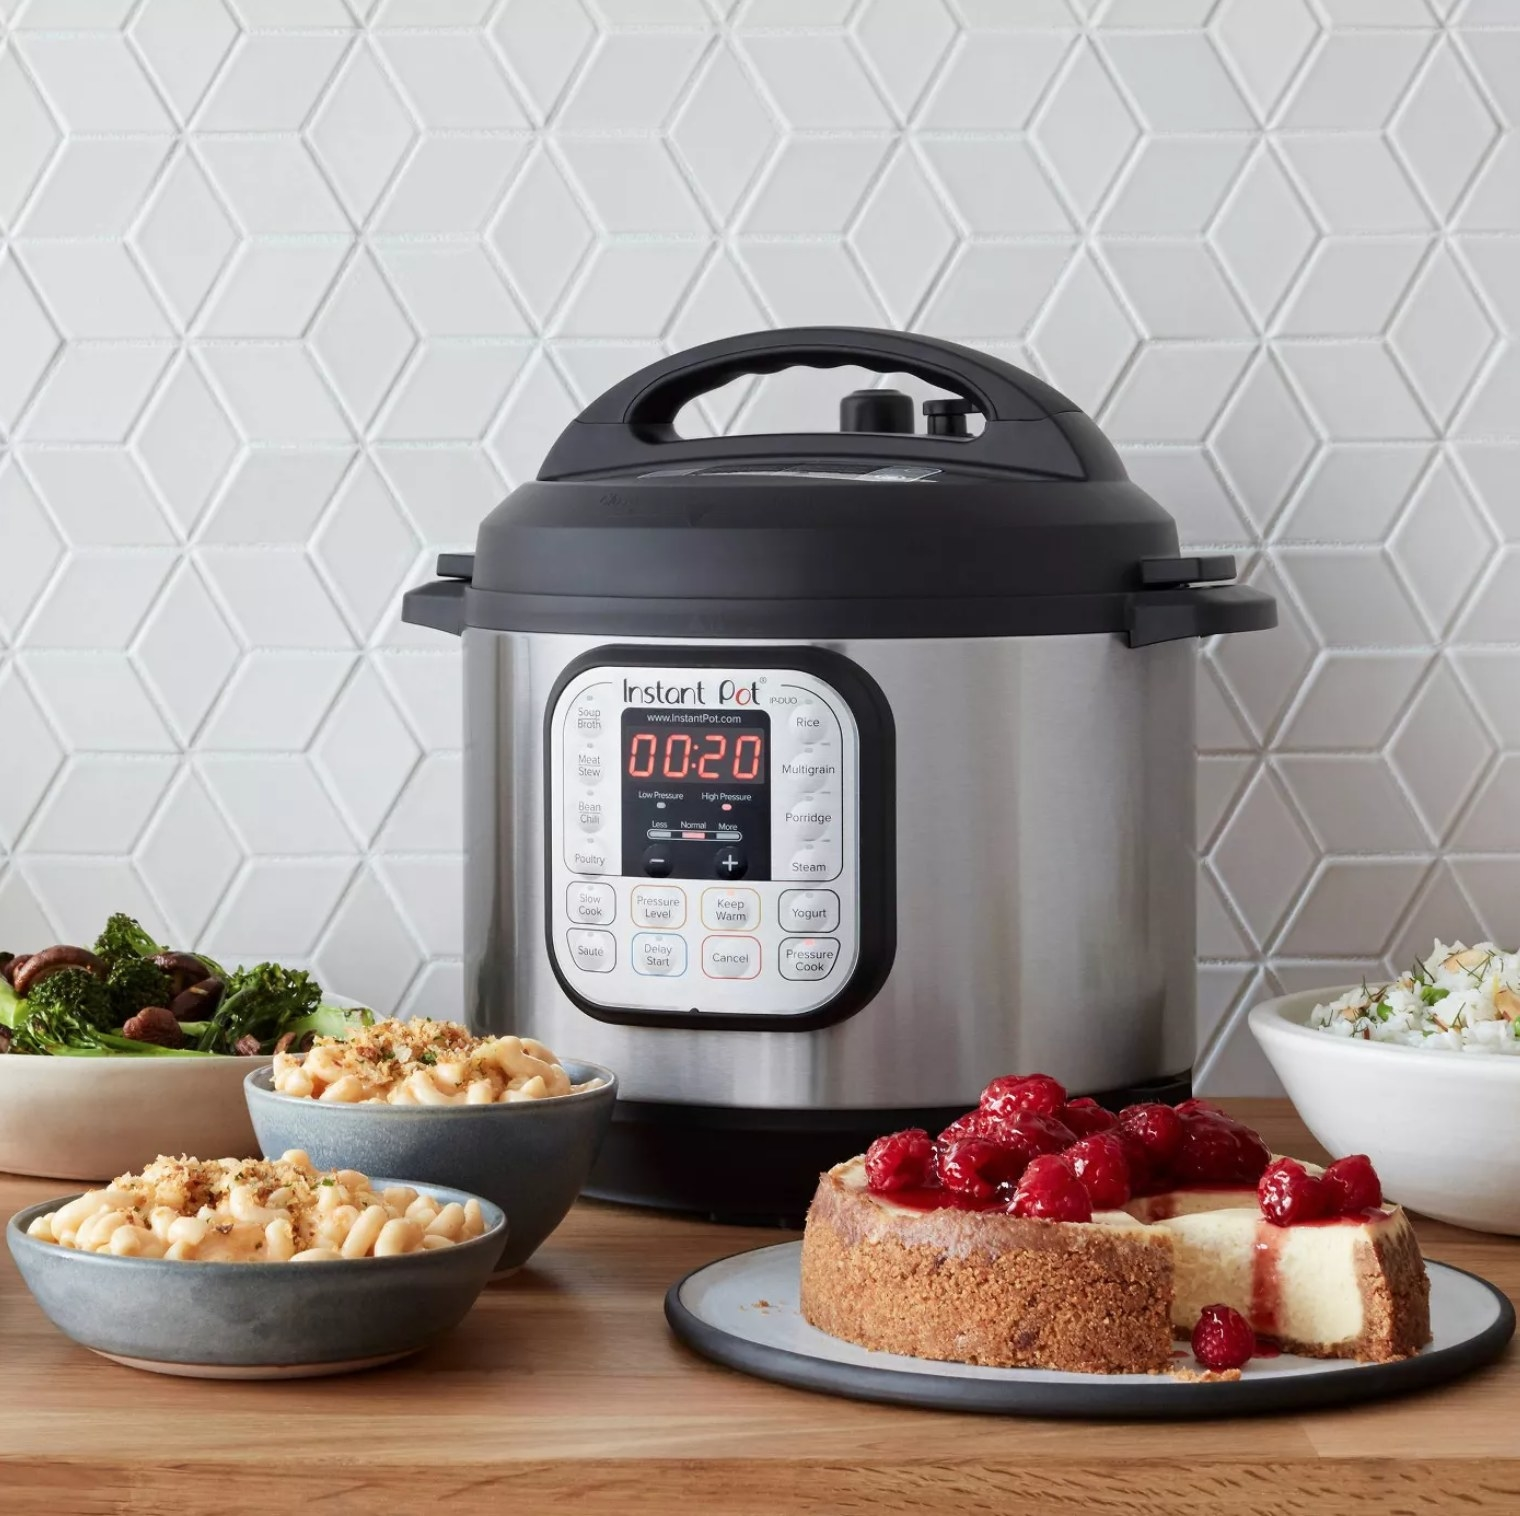 the instant pot surrounded by mac and cheese, cheesecake, and salad